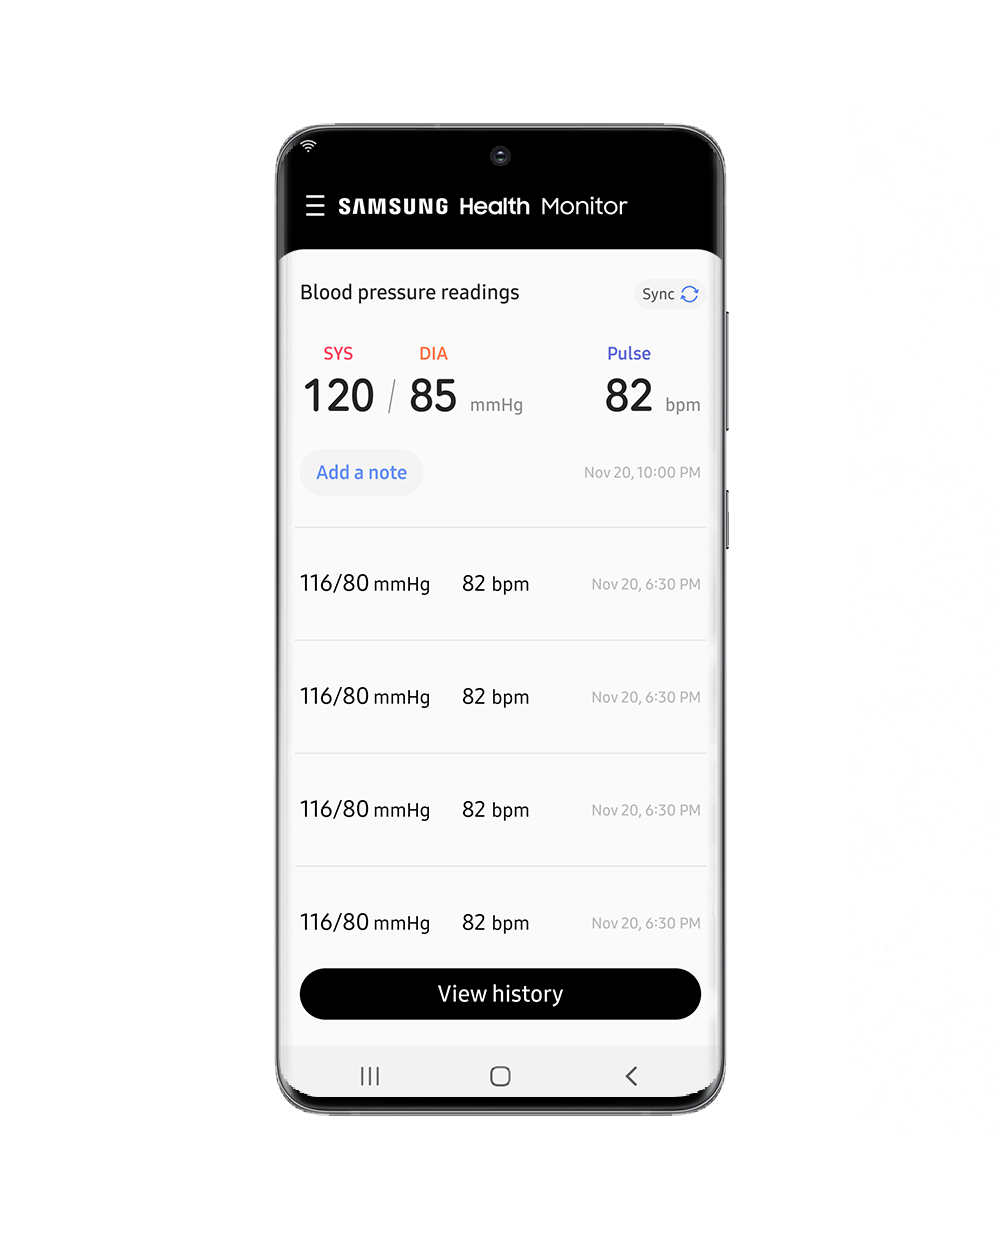 Samsung Launches the Samsung Health Monitor Application with Blood